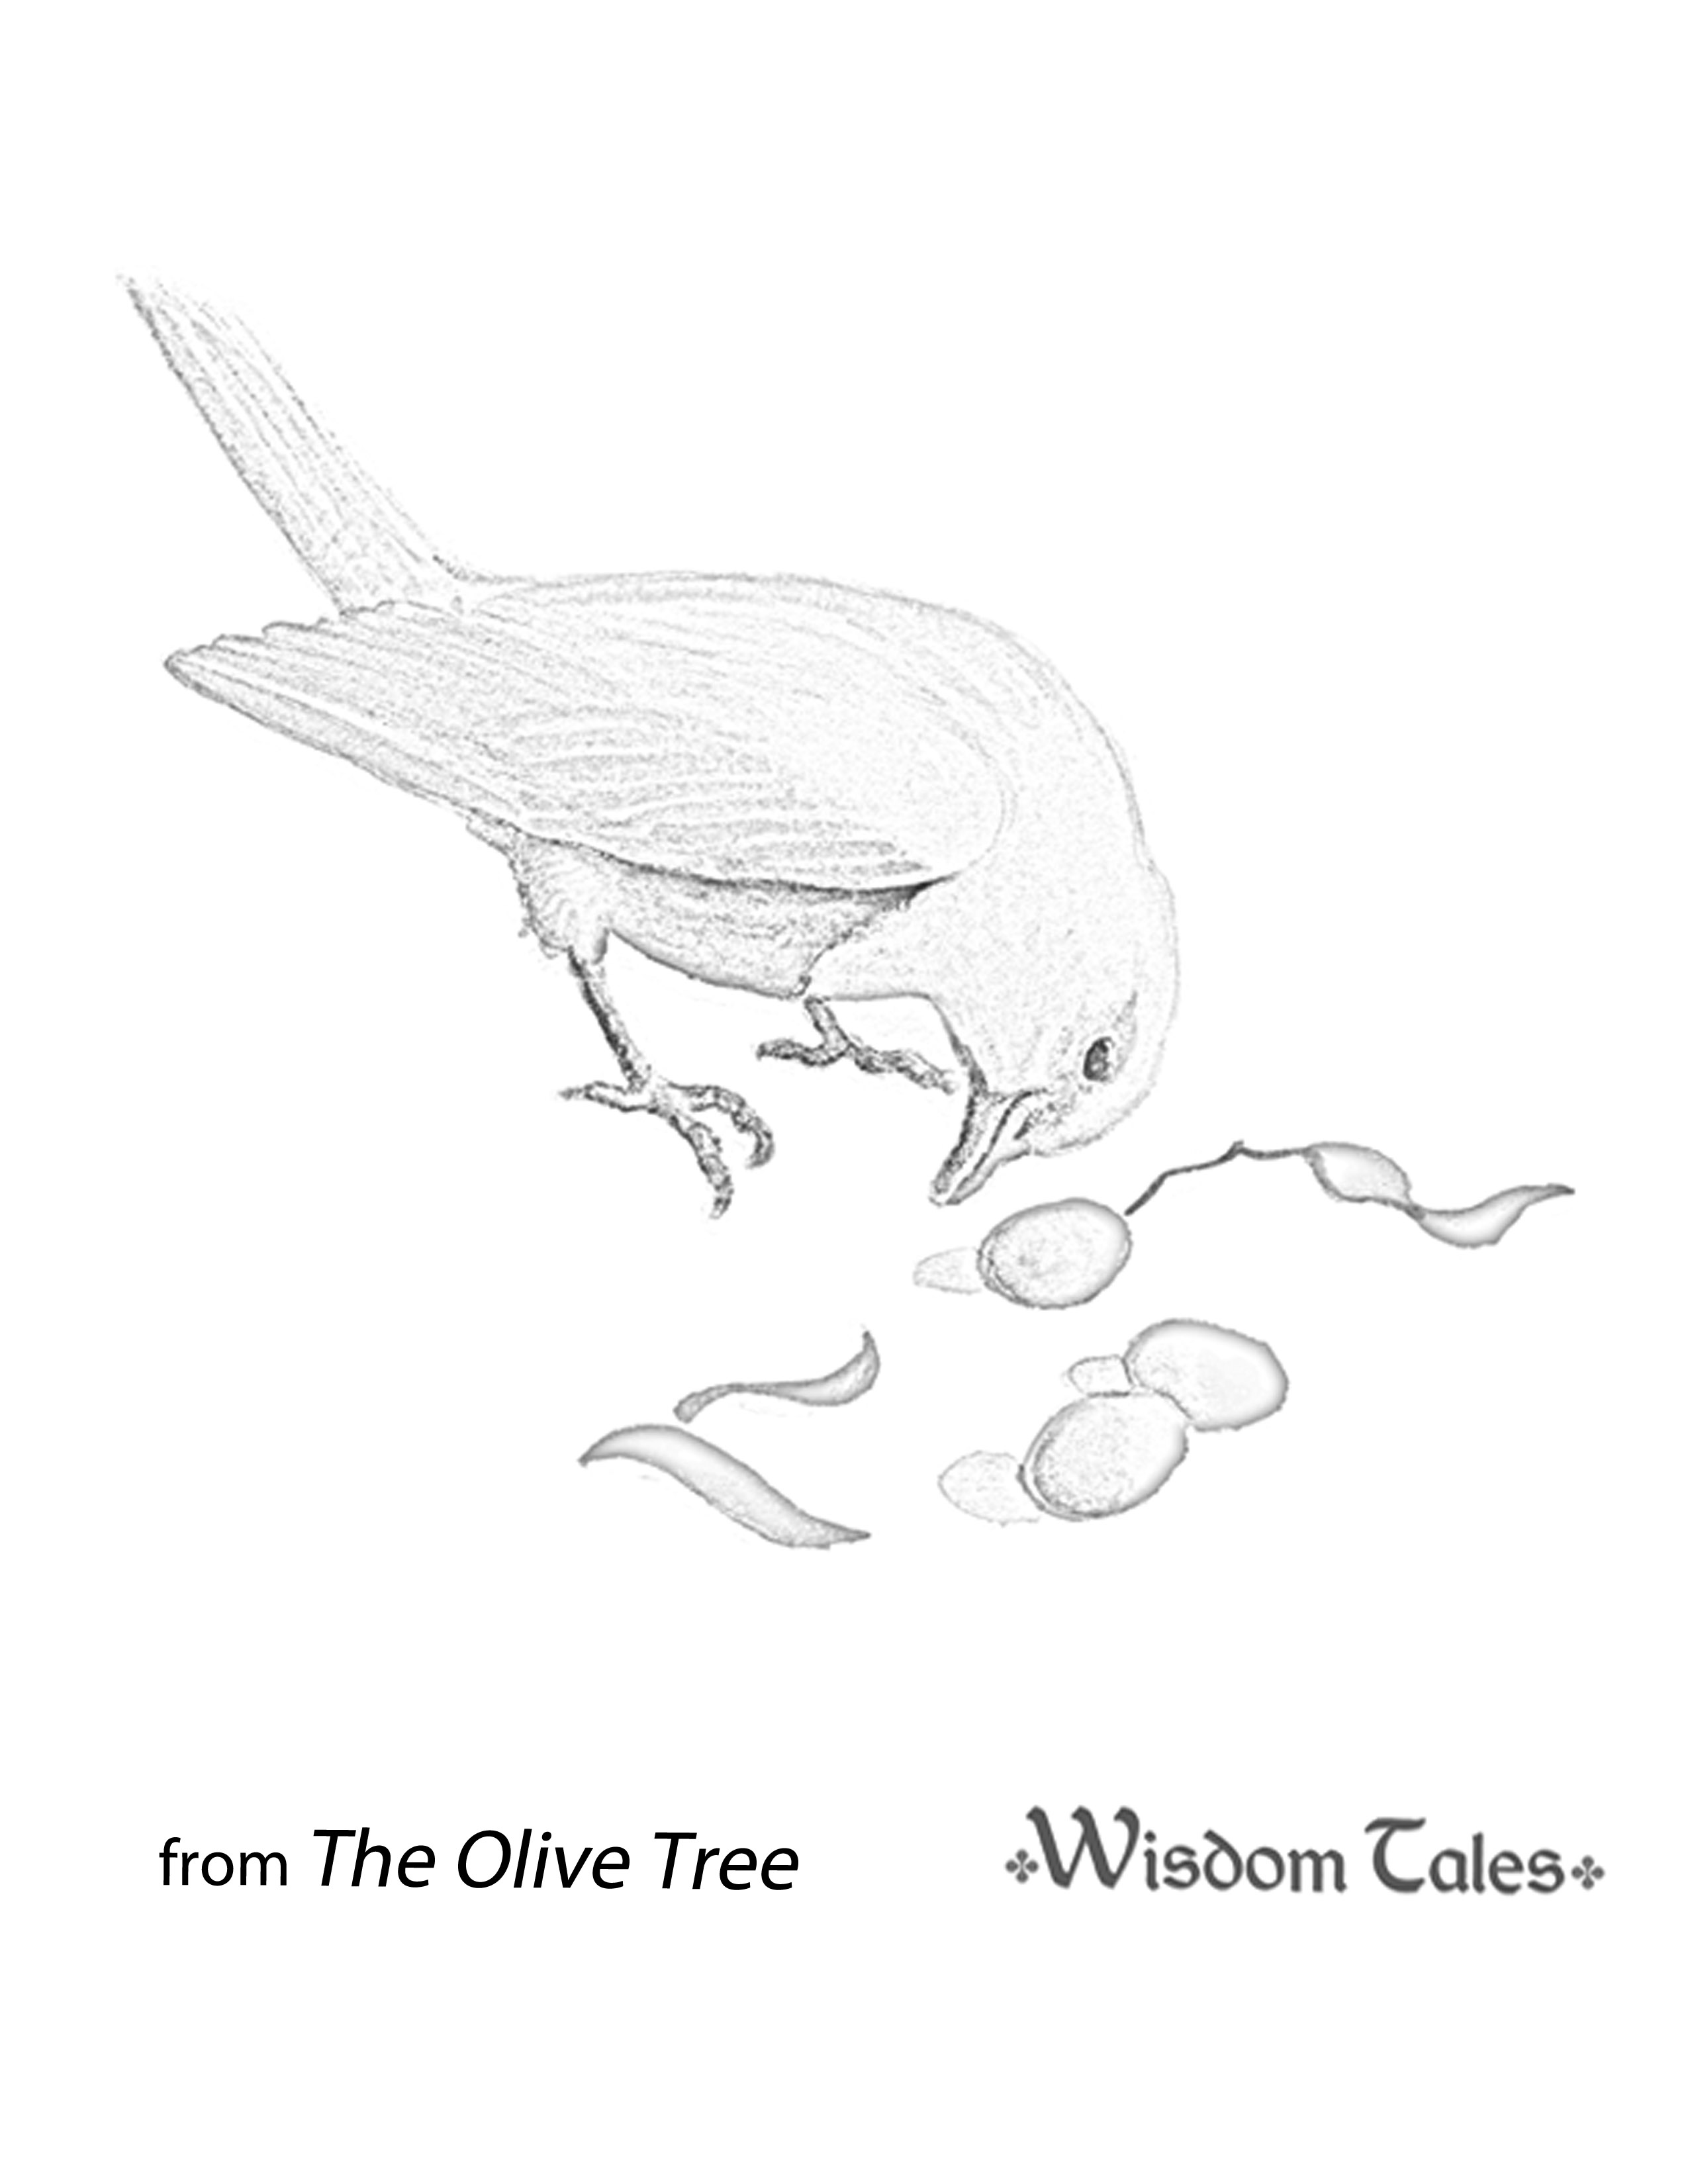 olive tree coloring page - the olive tree isbn 978 1 937786 29 8 by elsa martson